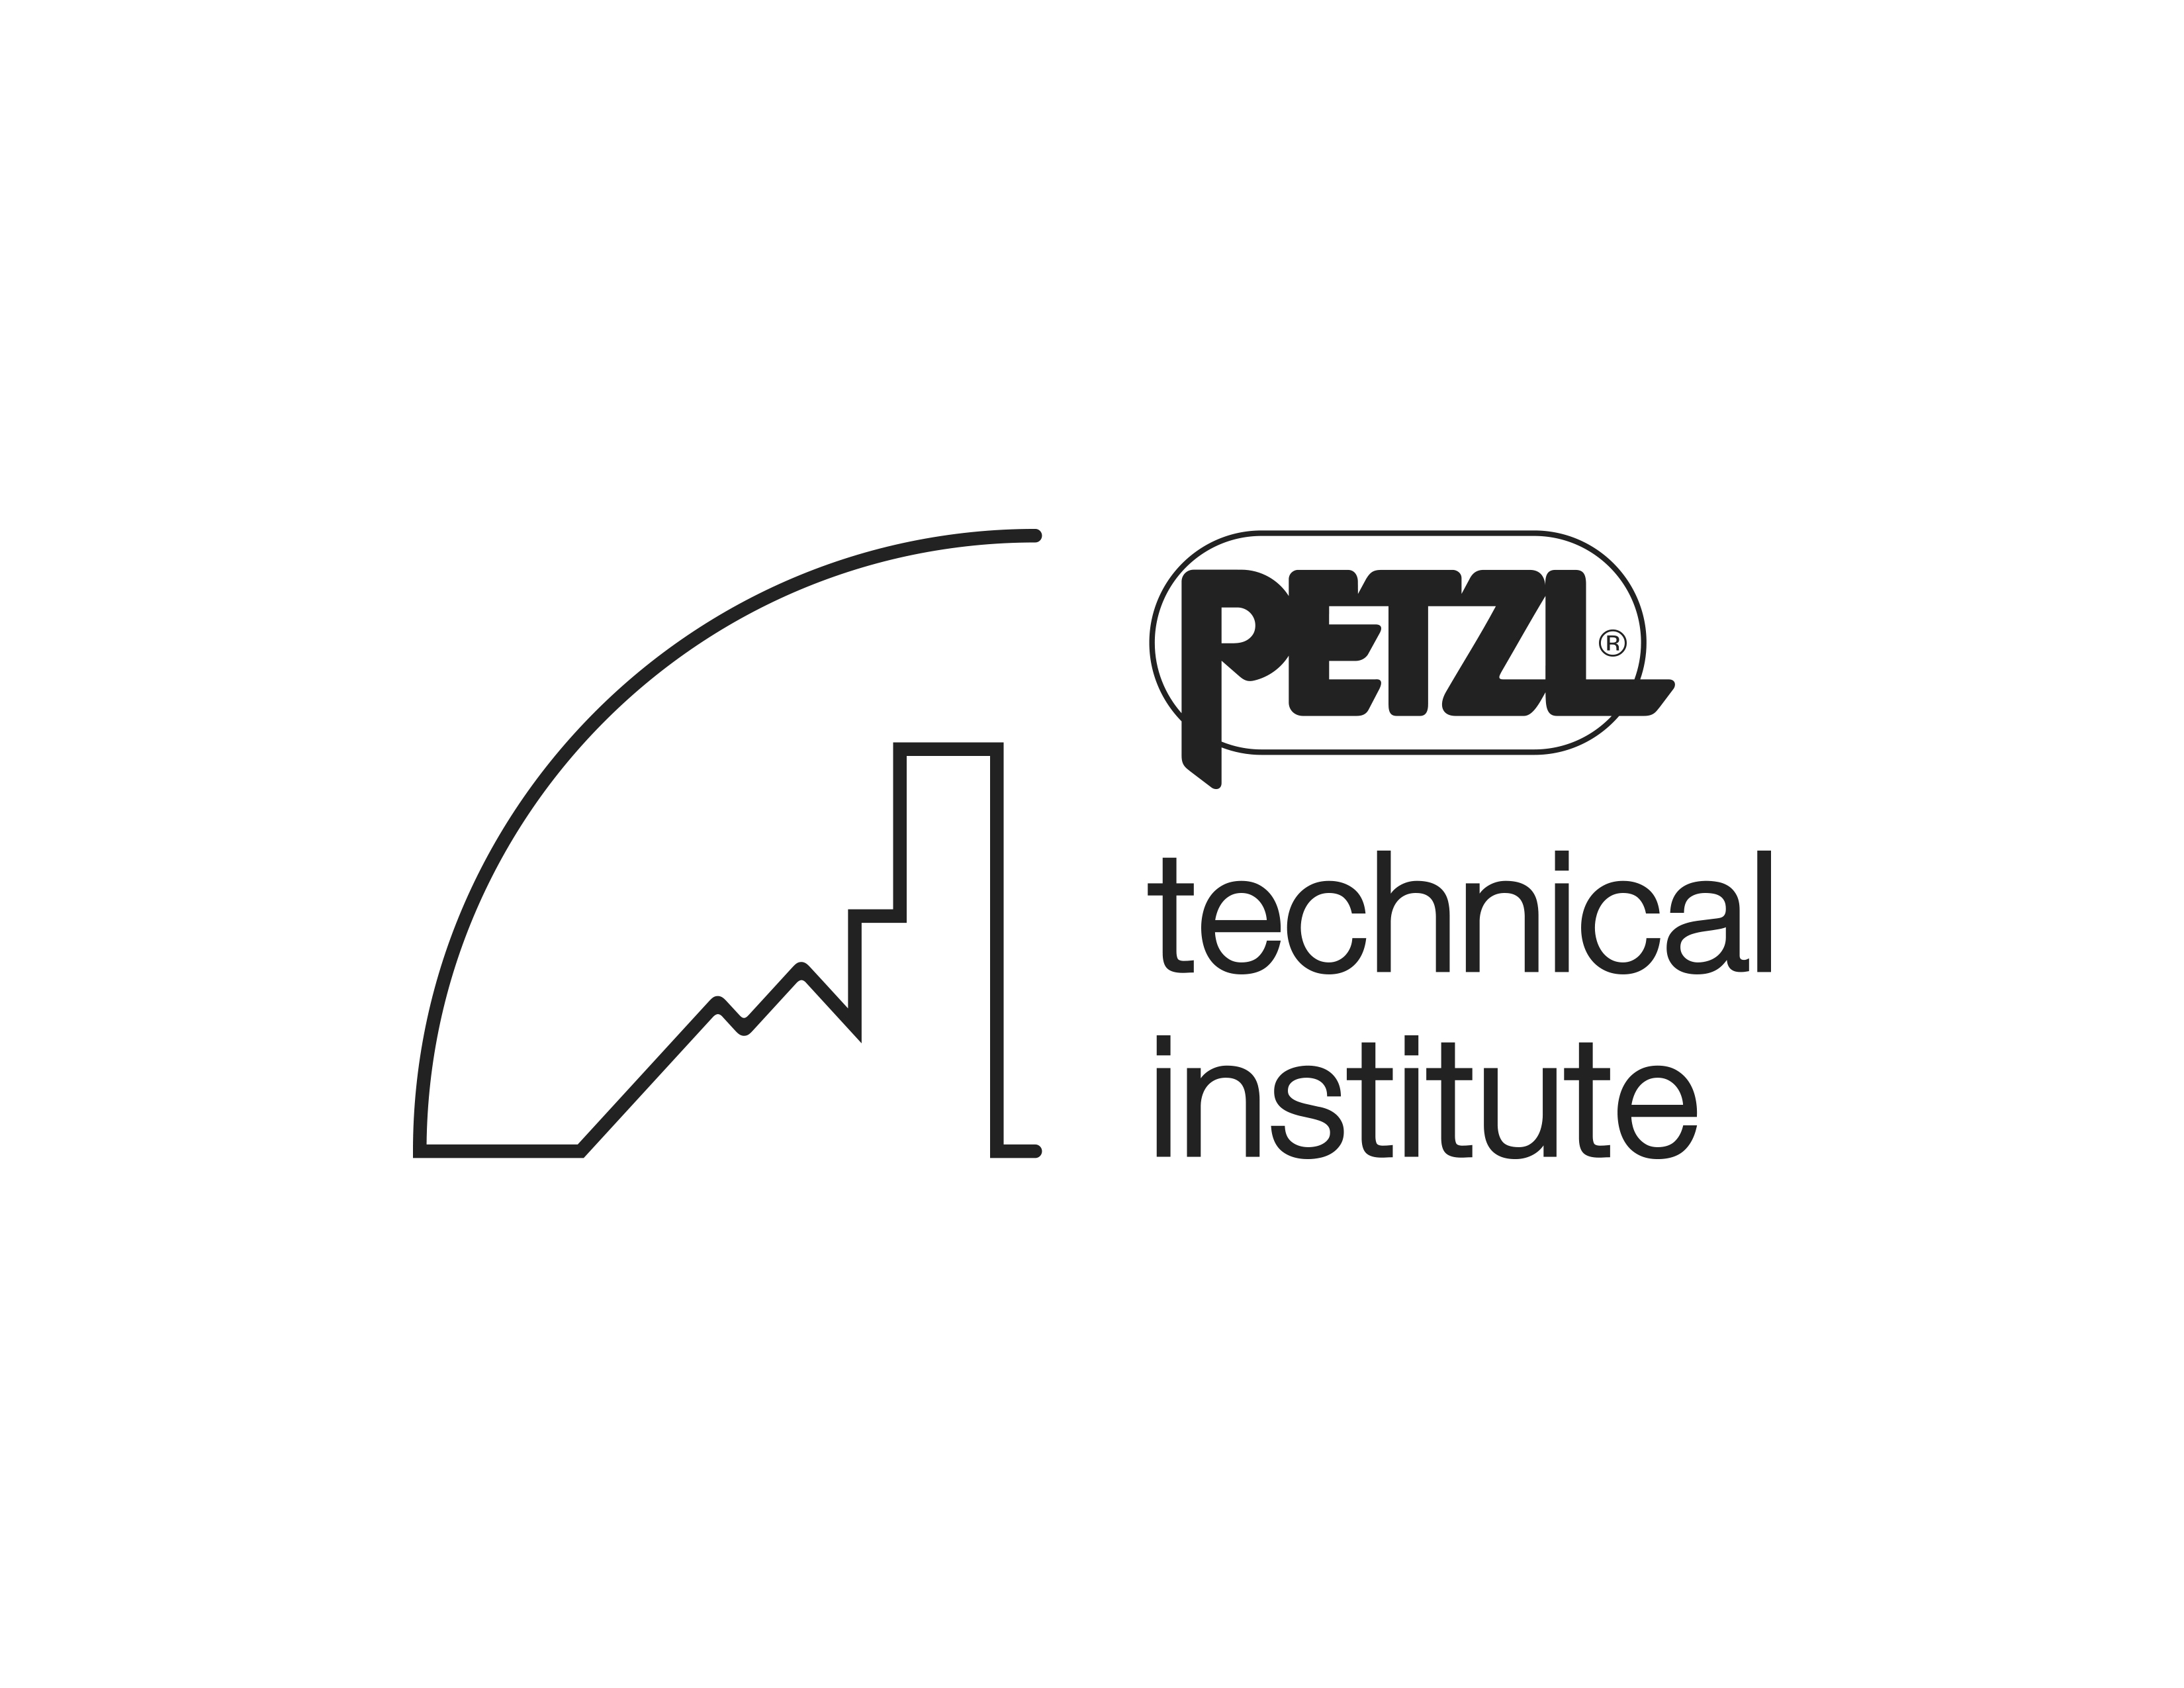 Petzl Technical institute